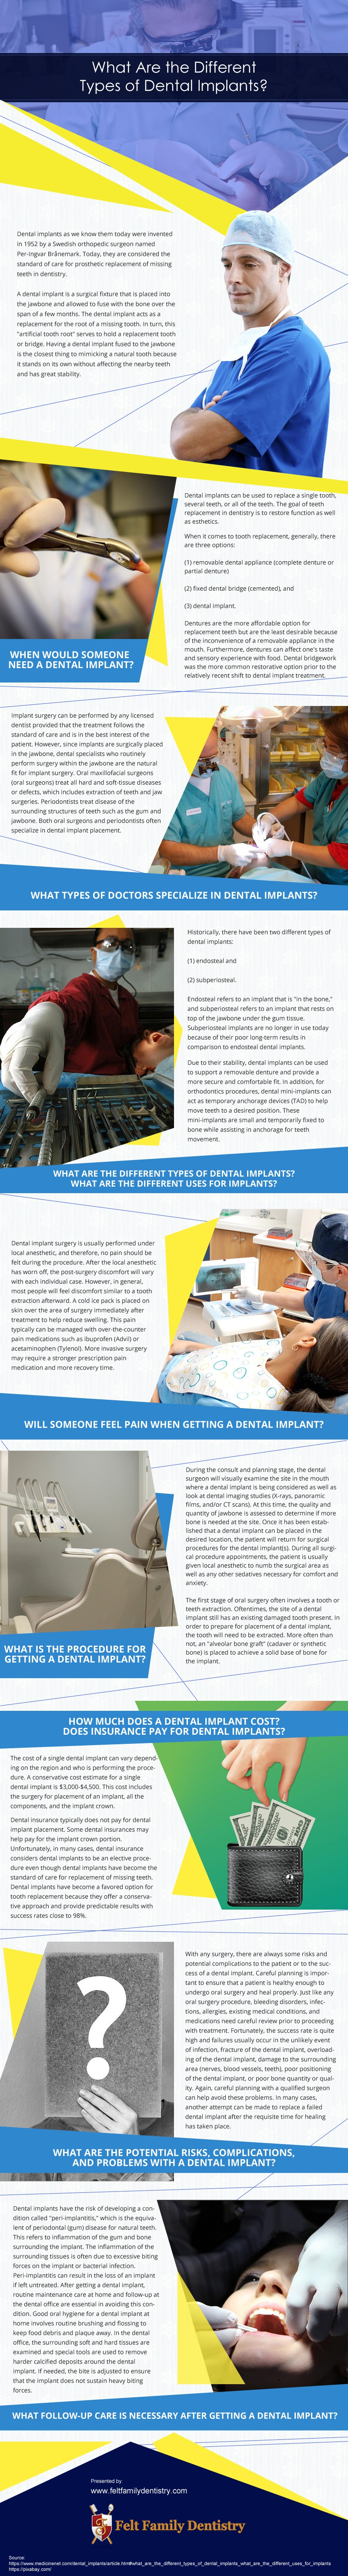 What are the Different Types of Dental Implants? [infographic]